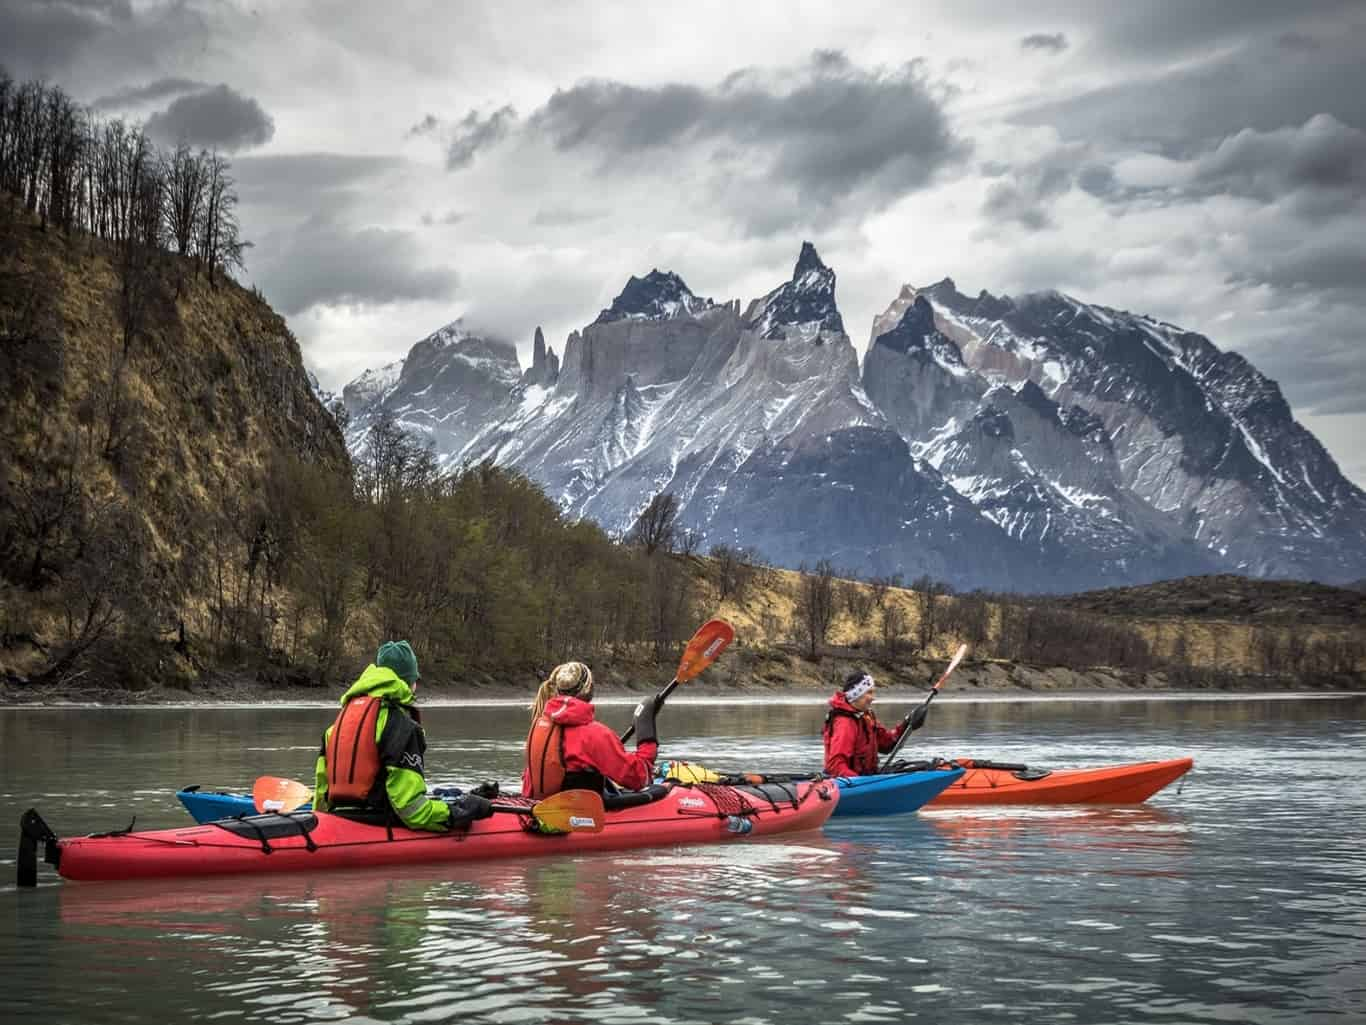 Route of the Parks of Patagonia: Kayaking in between Blue Icebergs in Torres del Paine National Park